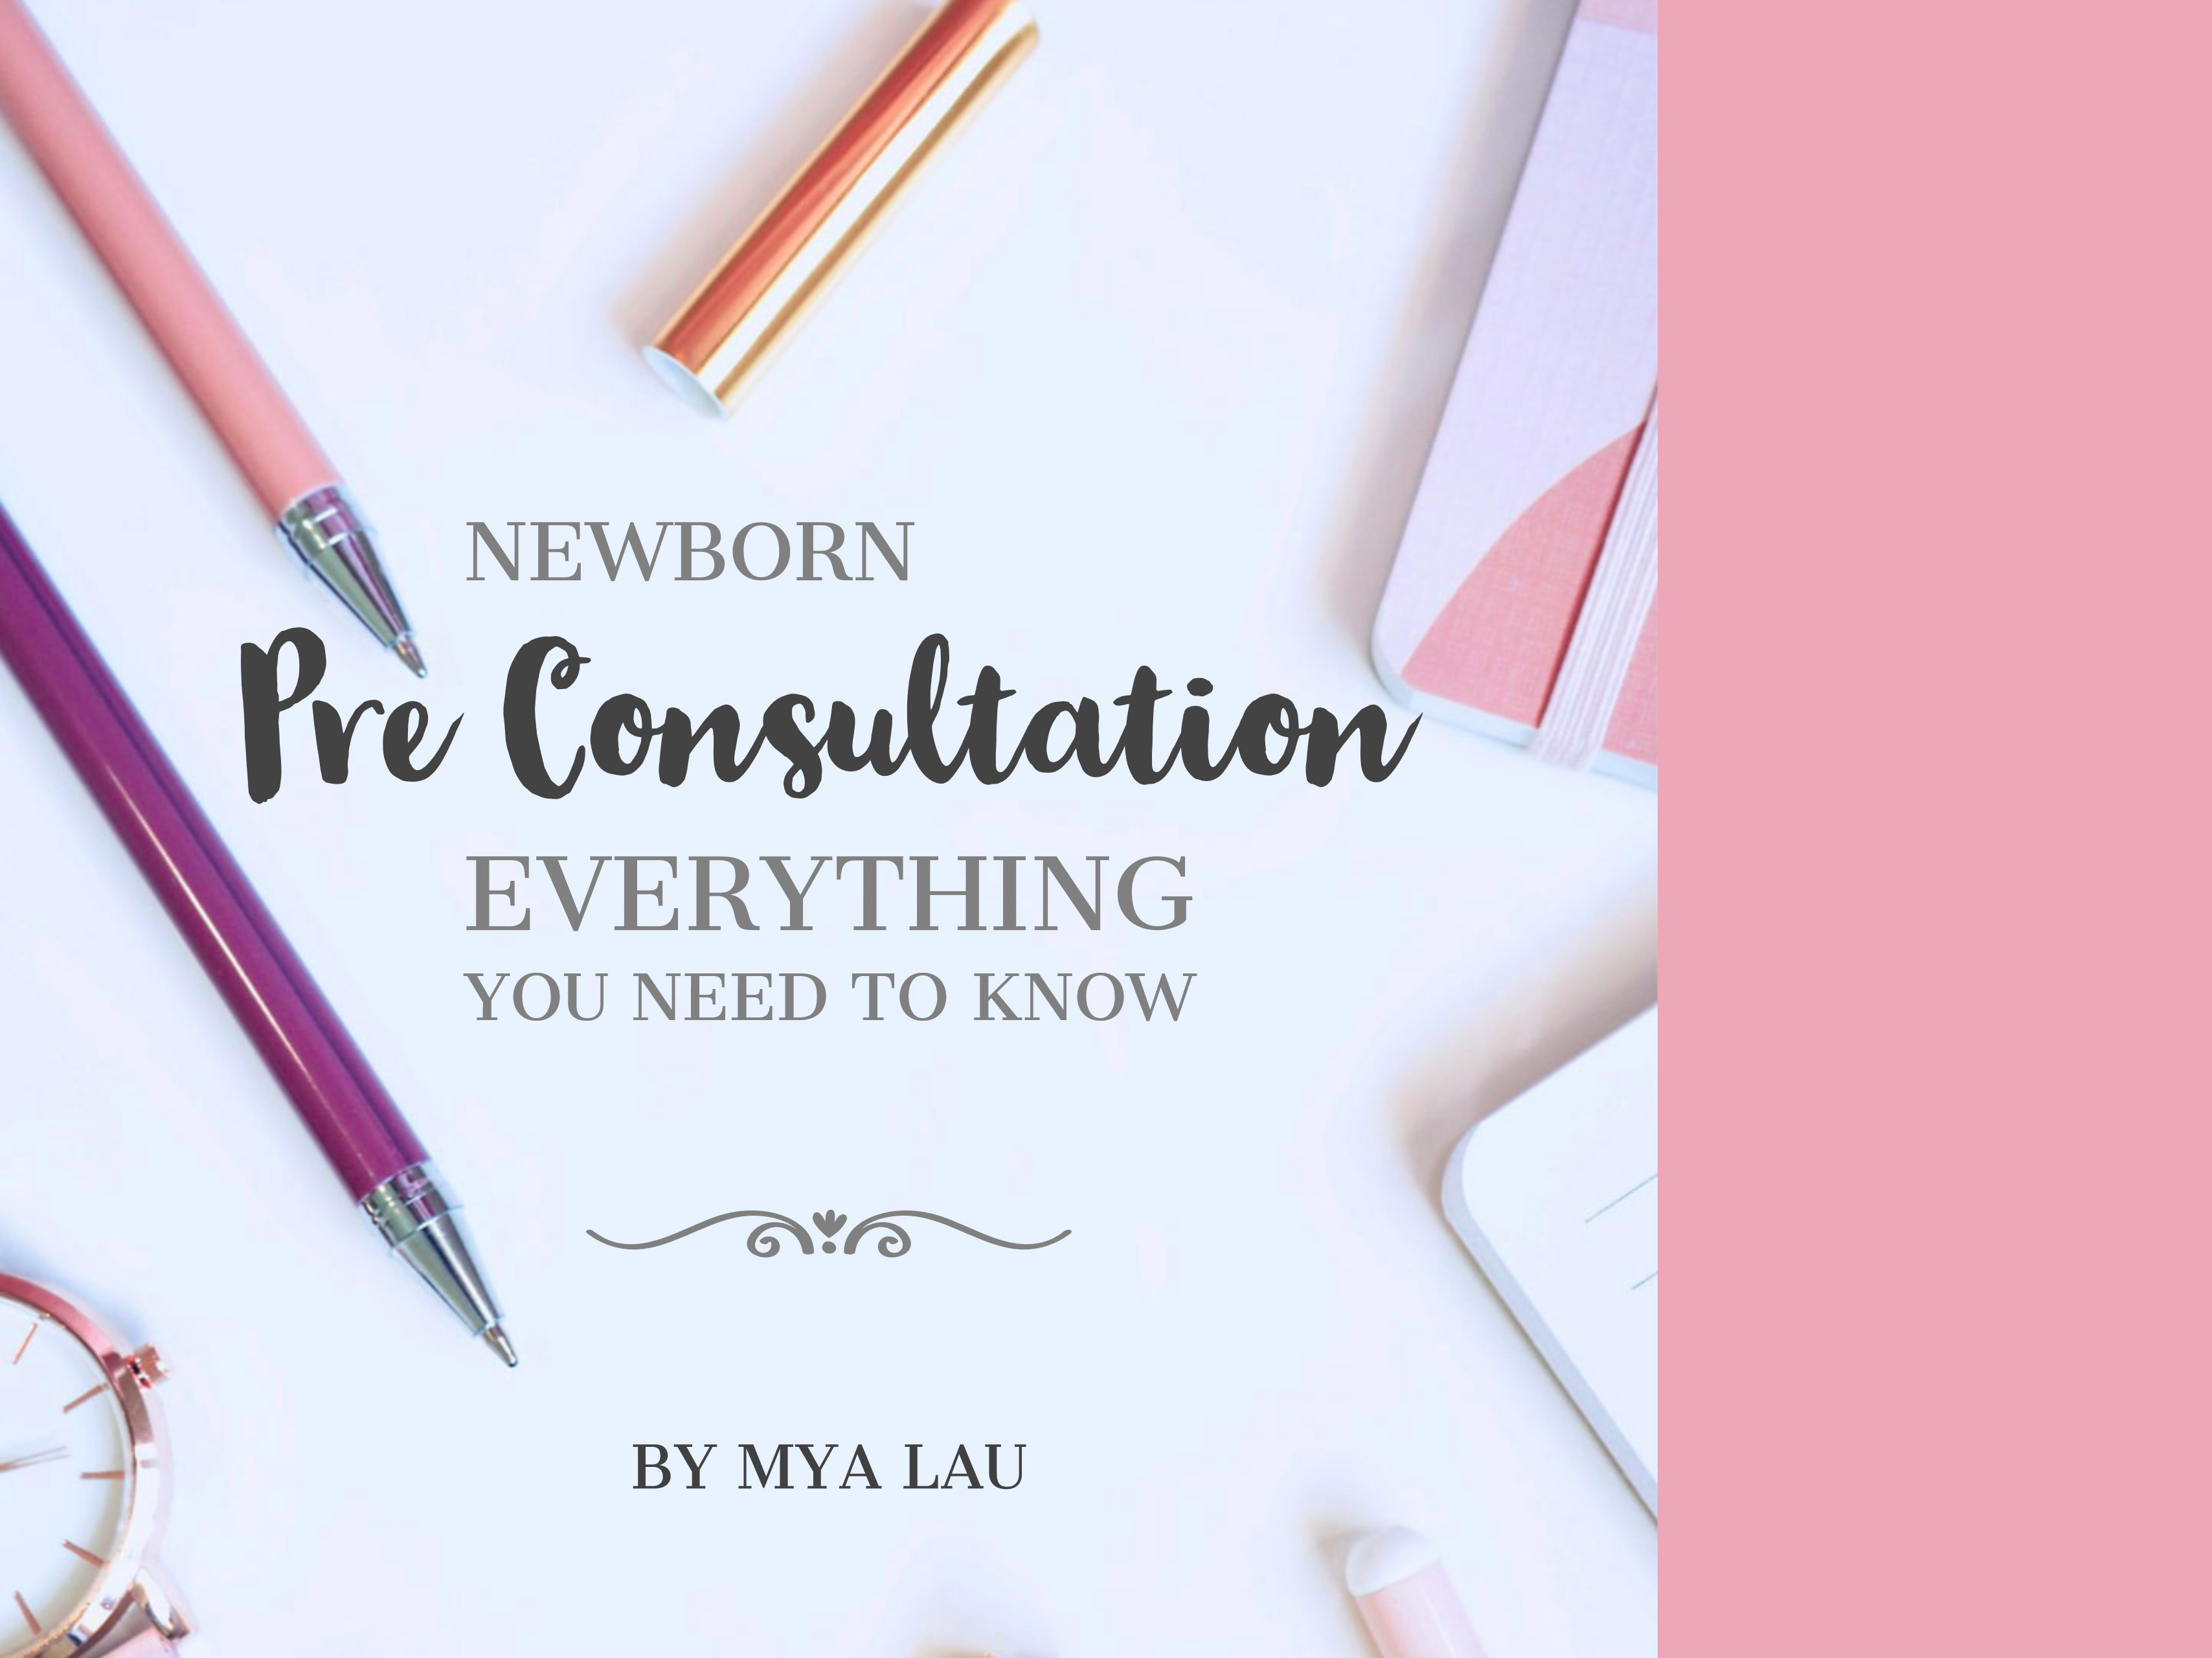 Newborn Pre-Consultation Prep – Everything You Need to Know